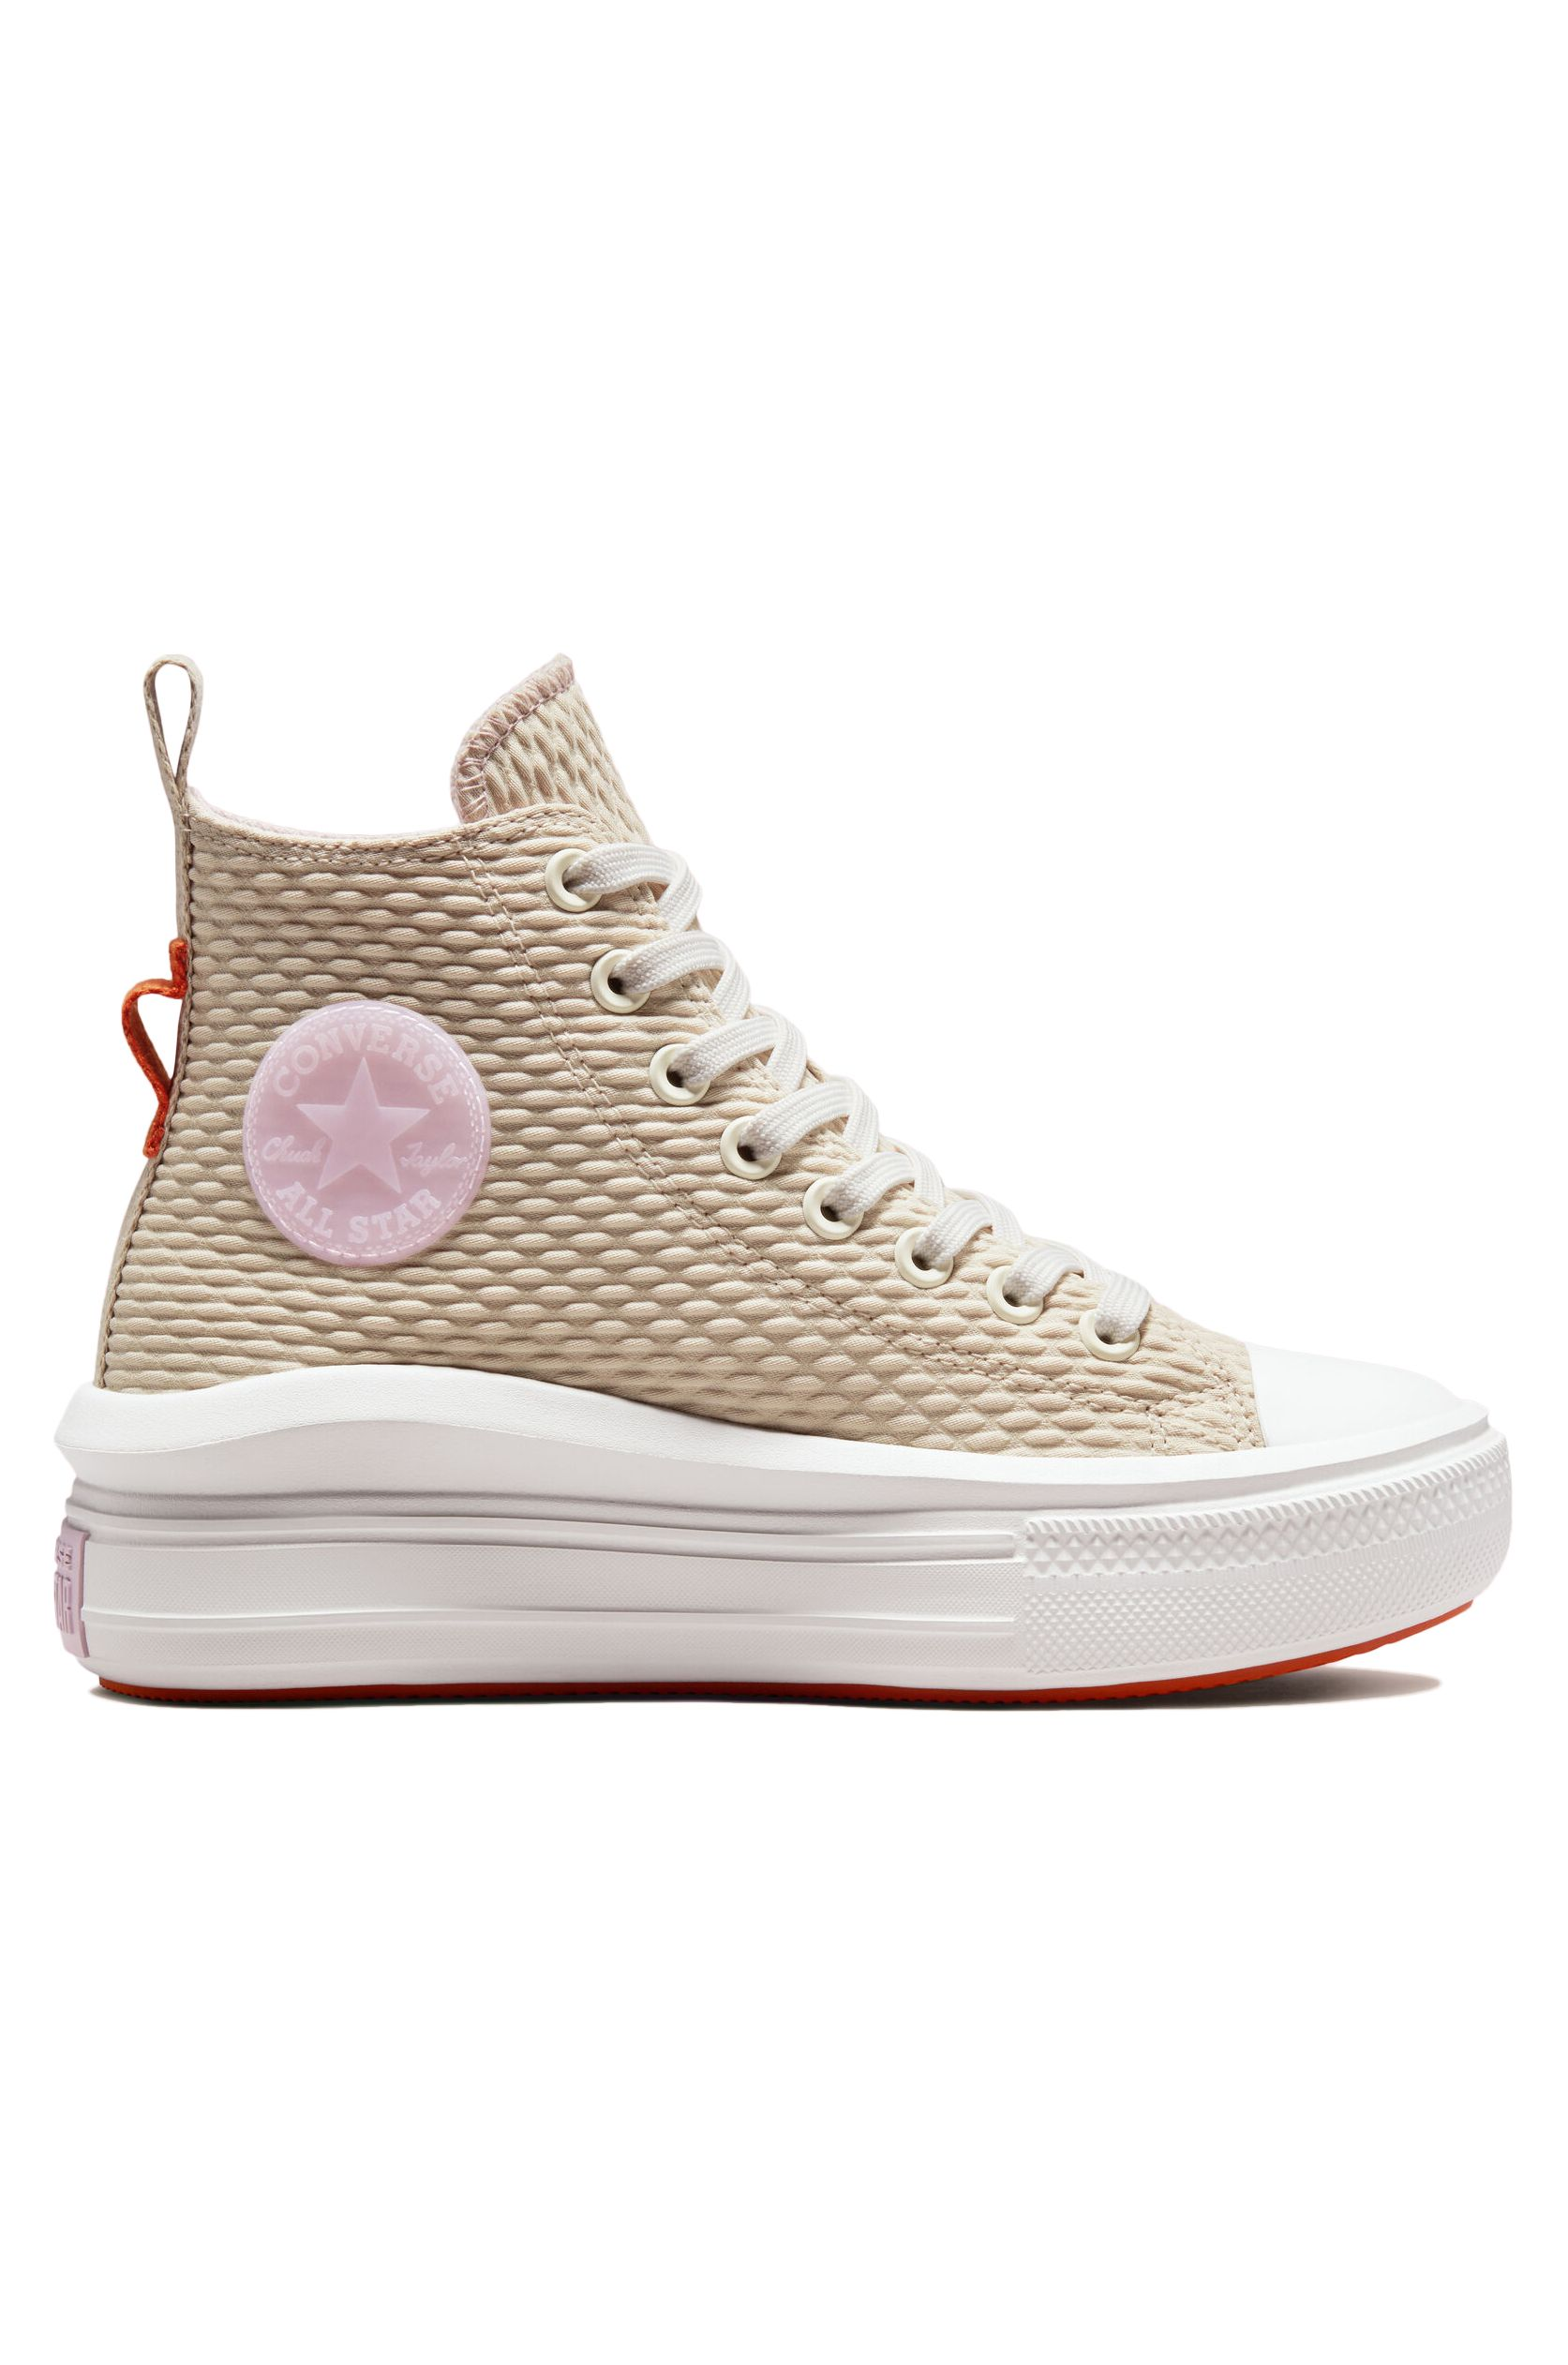 Converse Shoes CHUCK TAYLOR ALL STAR MOVE HI String/Vintage White/Fire Pit